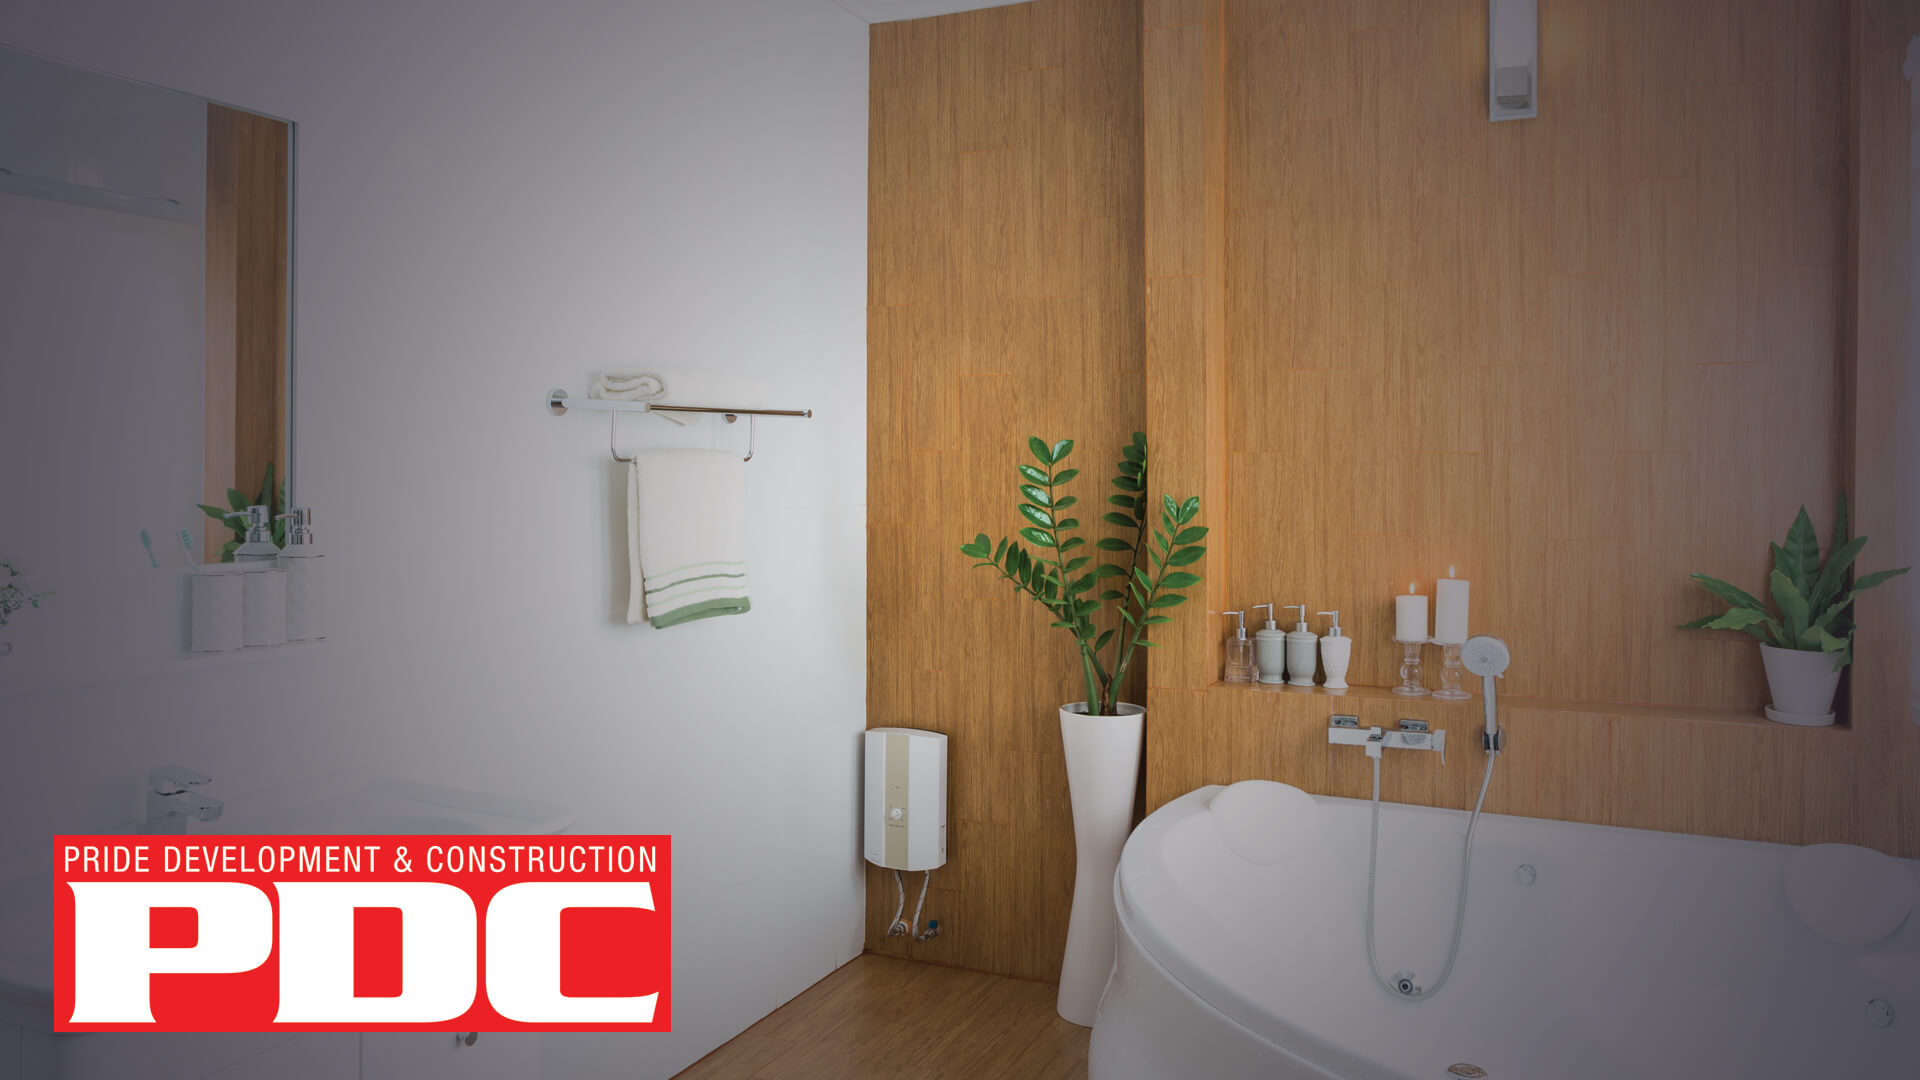 Bathroom Remodels With Your Home Contractors In Colorado - Colorado bathroom remodel